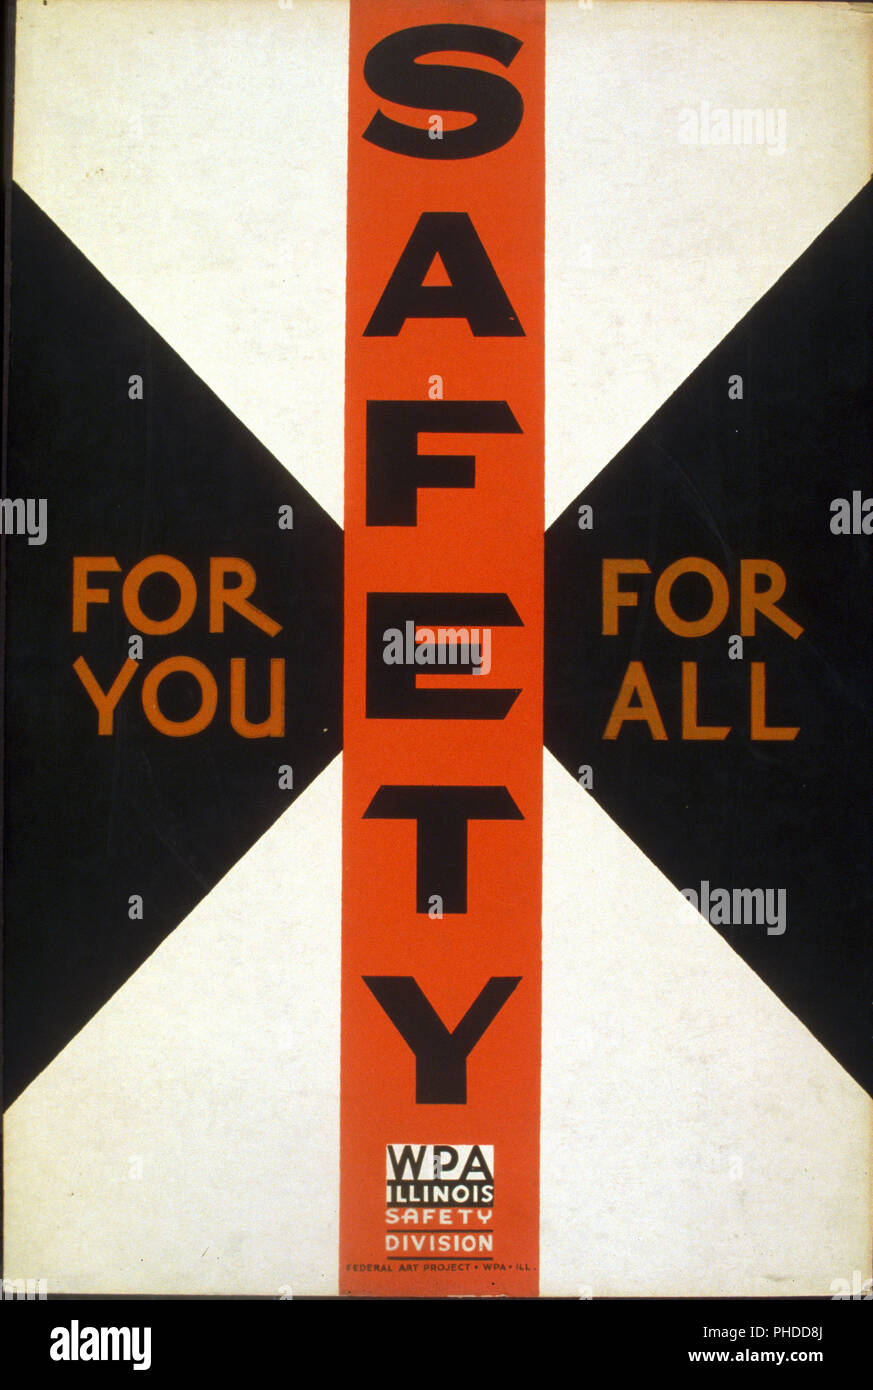 Civil Defense Stock Photos & Civil Defense Stock Images - Alamy